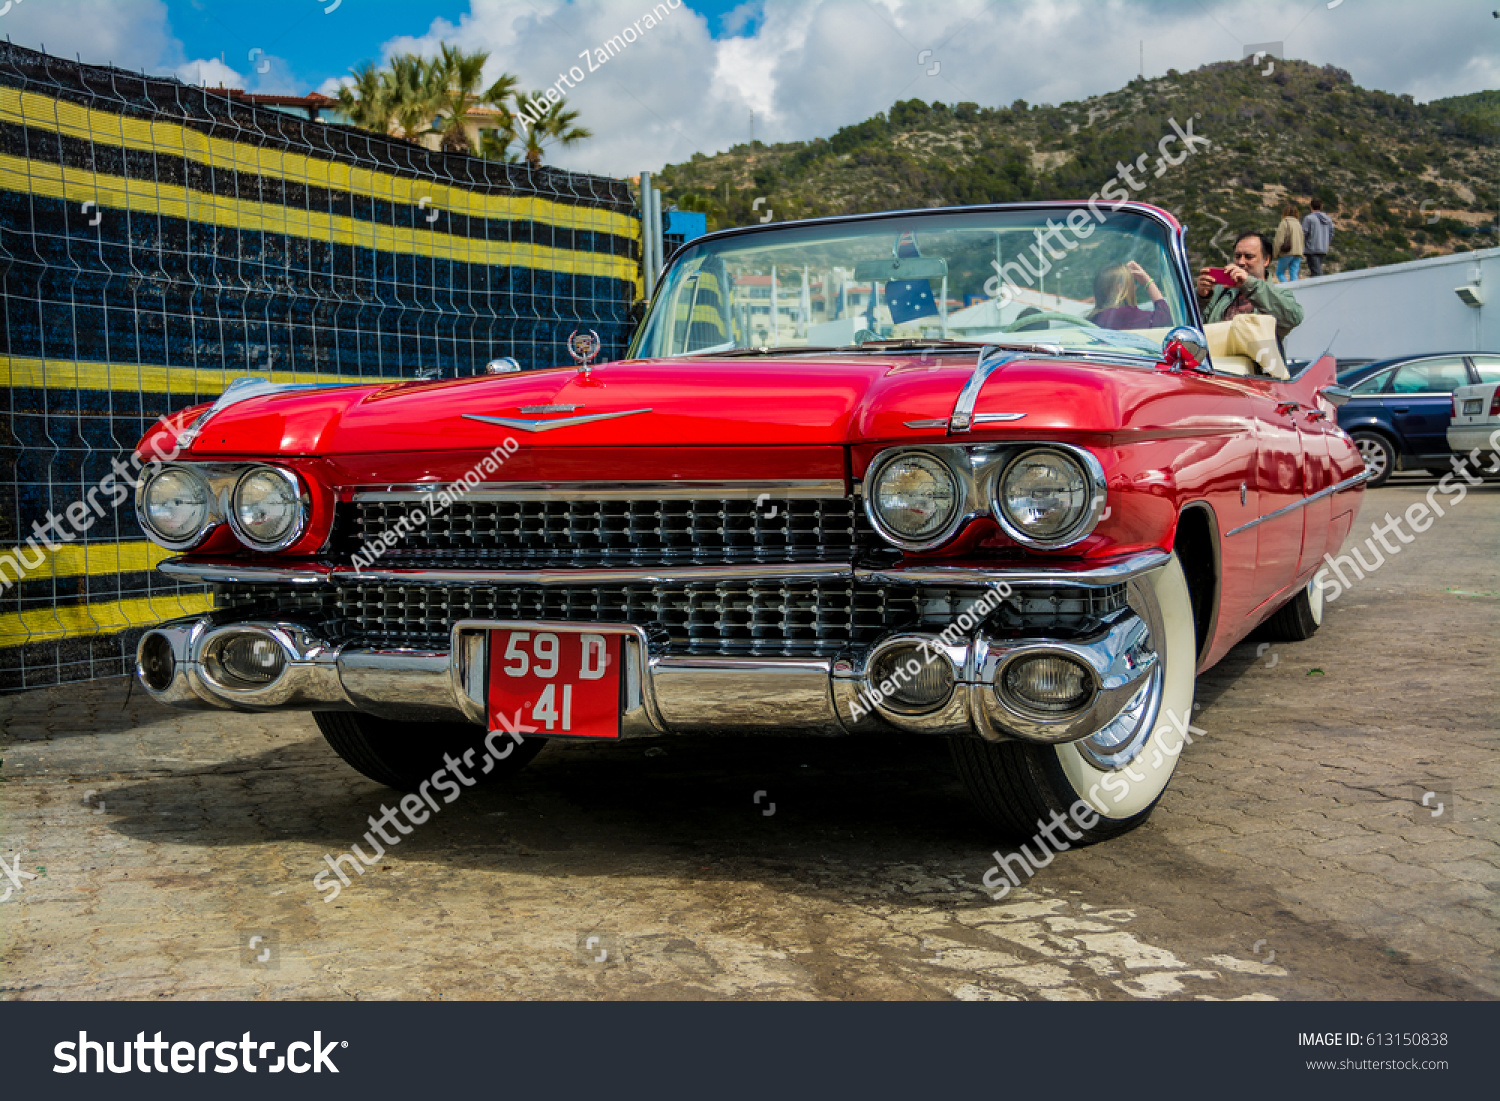 2016 Cadillac Convertible >> April 2016 Cadillac Convertible 1950 Parked Stock Photo